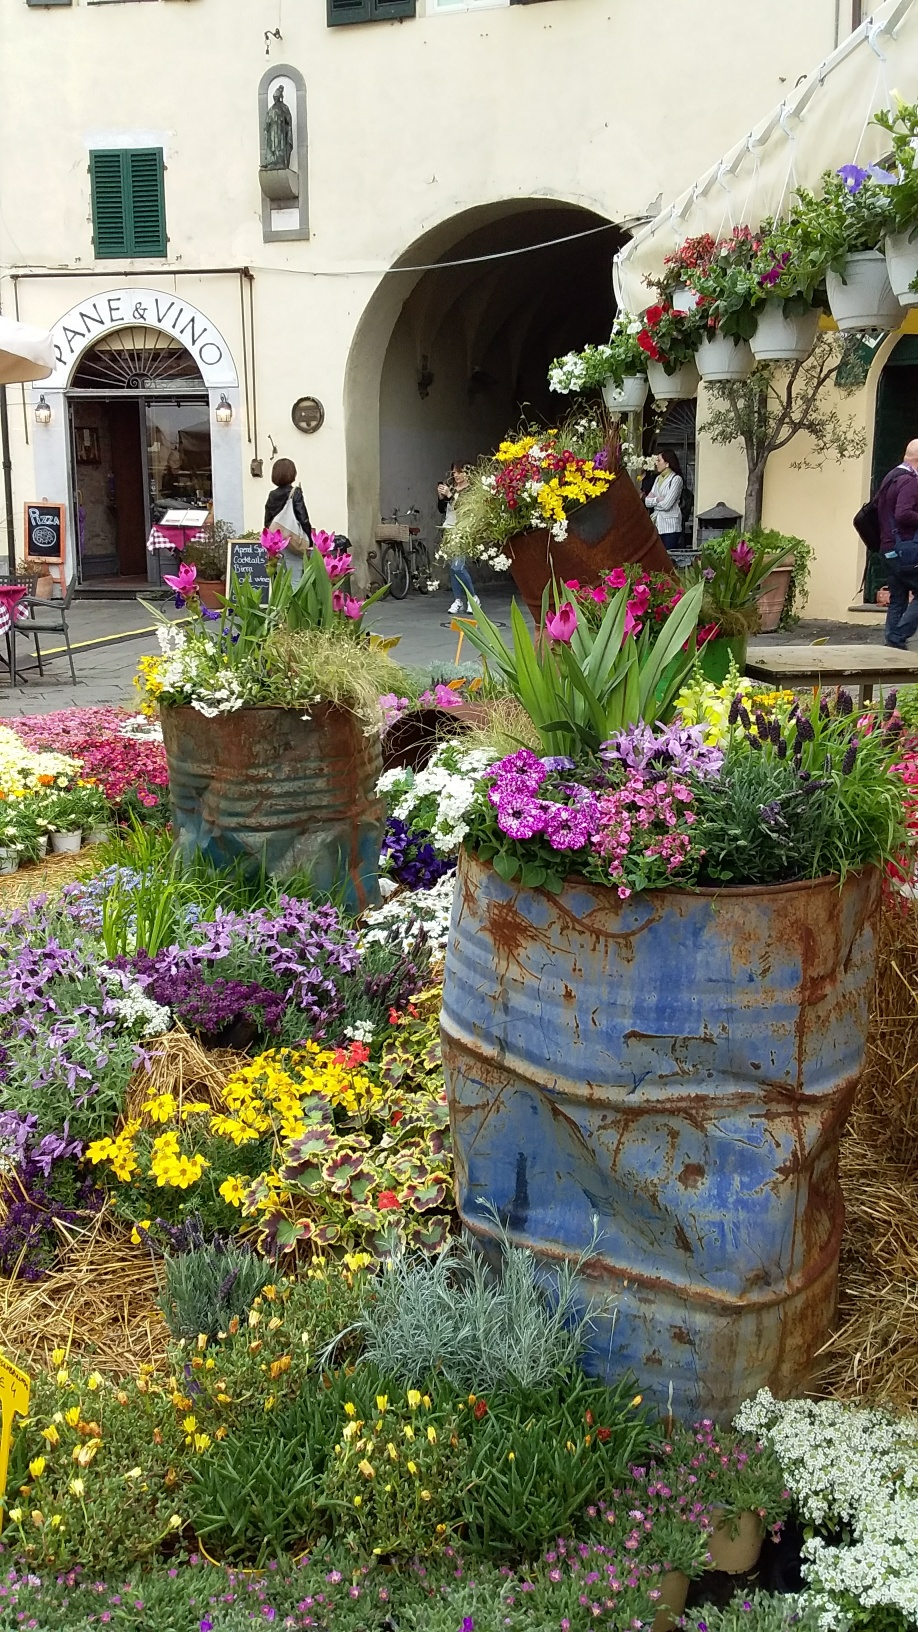 Santa Zita is remembered each year with a flower market in late April. This display was part of the 2019 market.